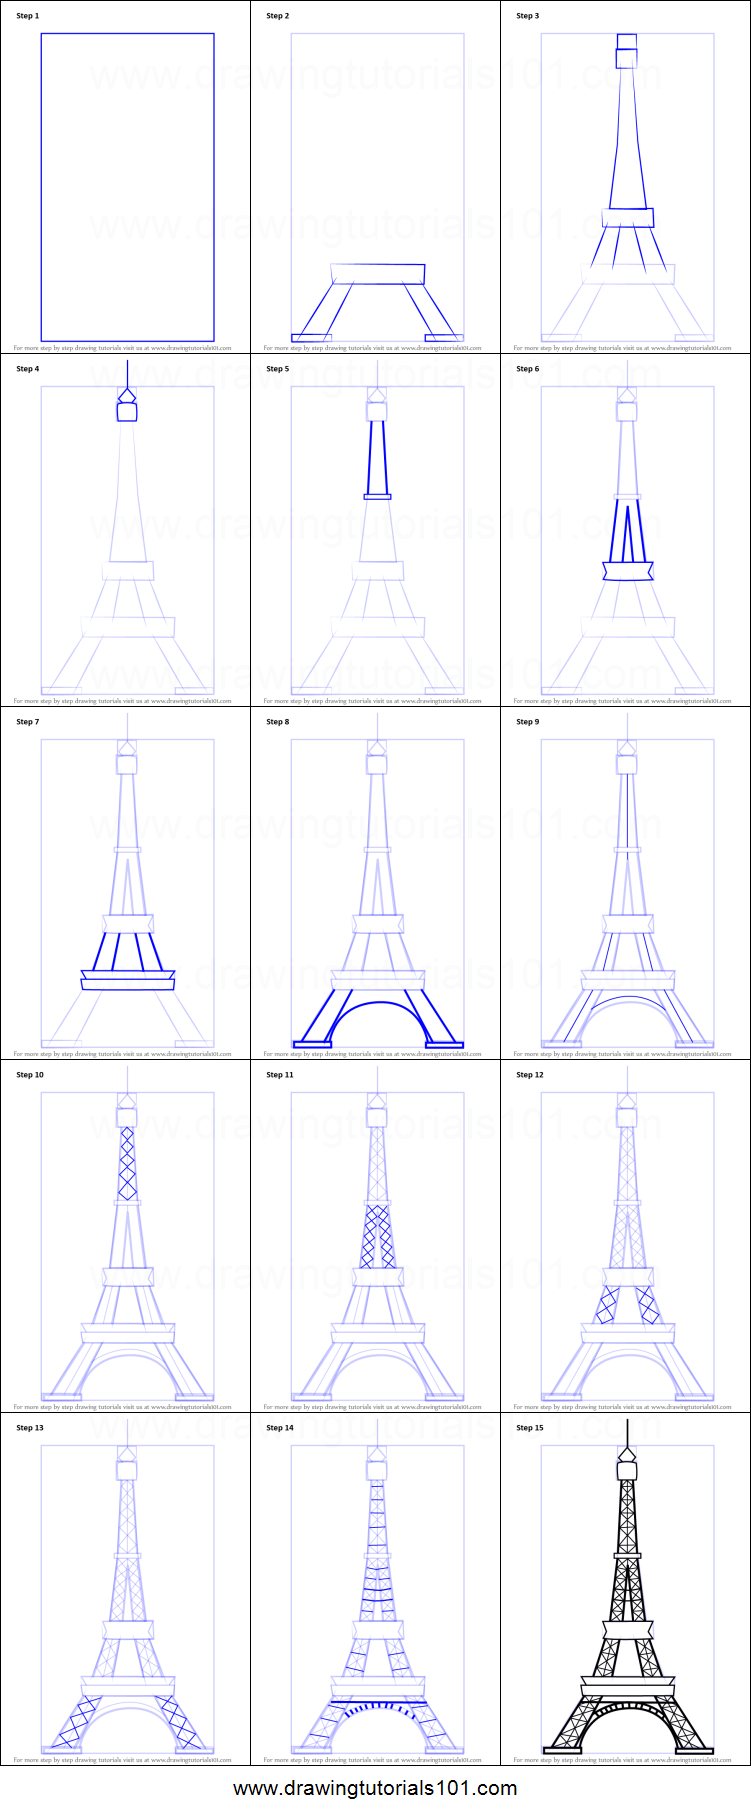 How to draw an eiffel tower printable step by step drawing sheet how to draw an eiffel tower printable step by step drawing sheet drawingtutorials101 thecheapjerseys Gallery